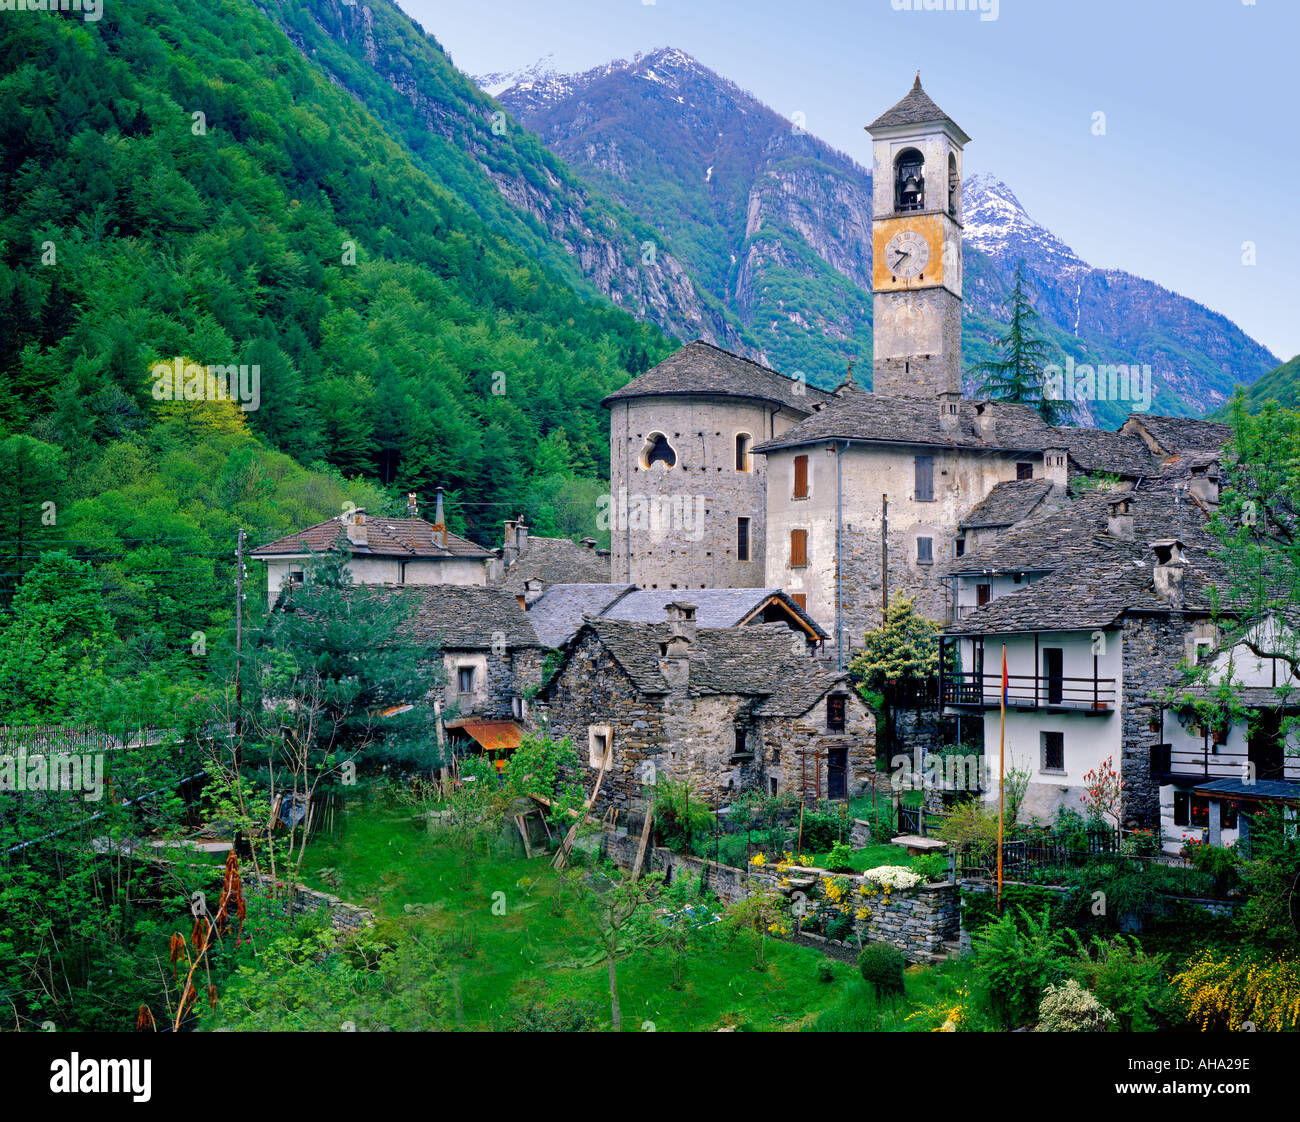 how to get to valle verzasca